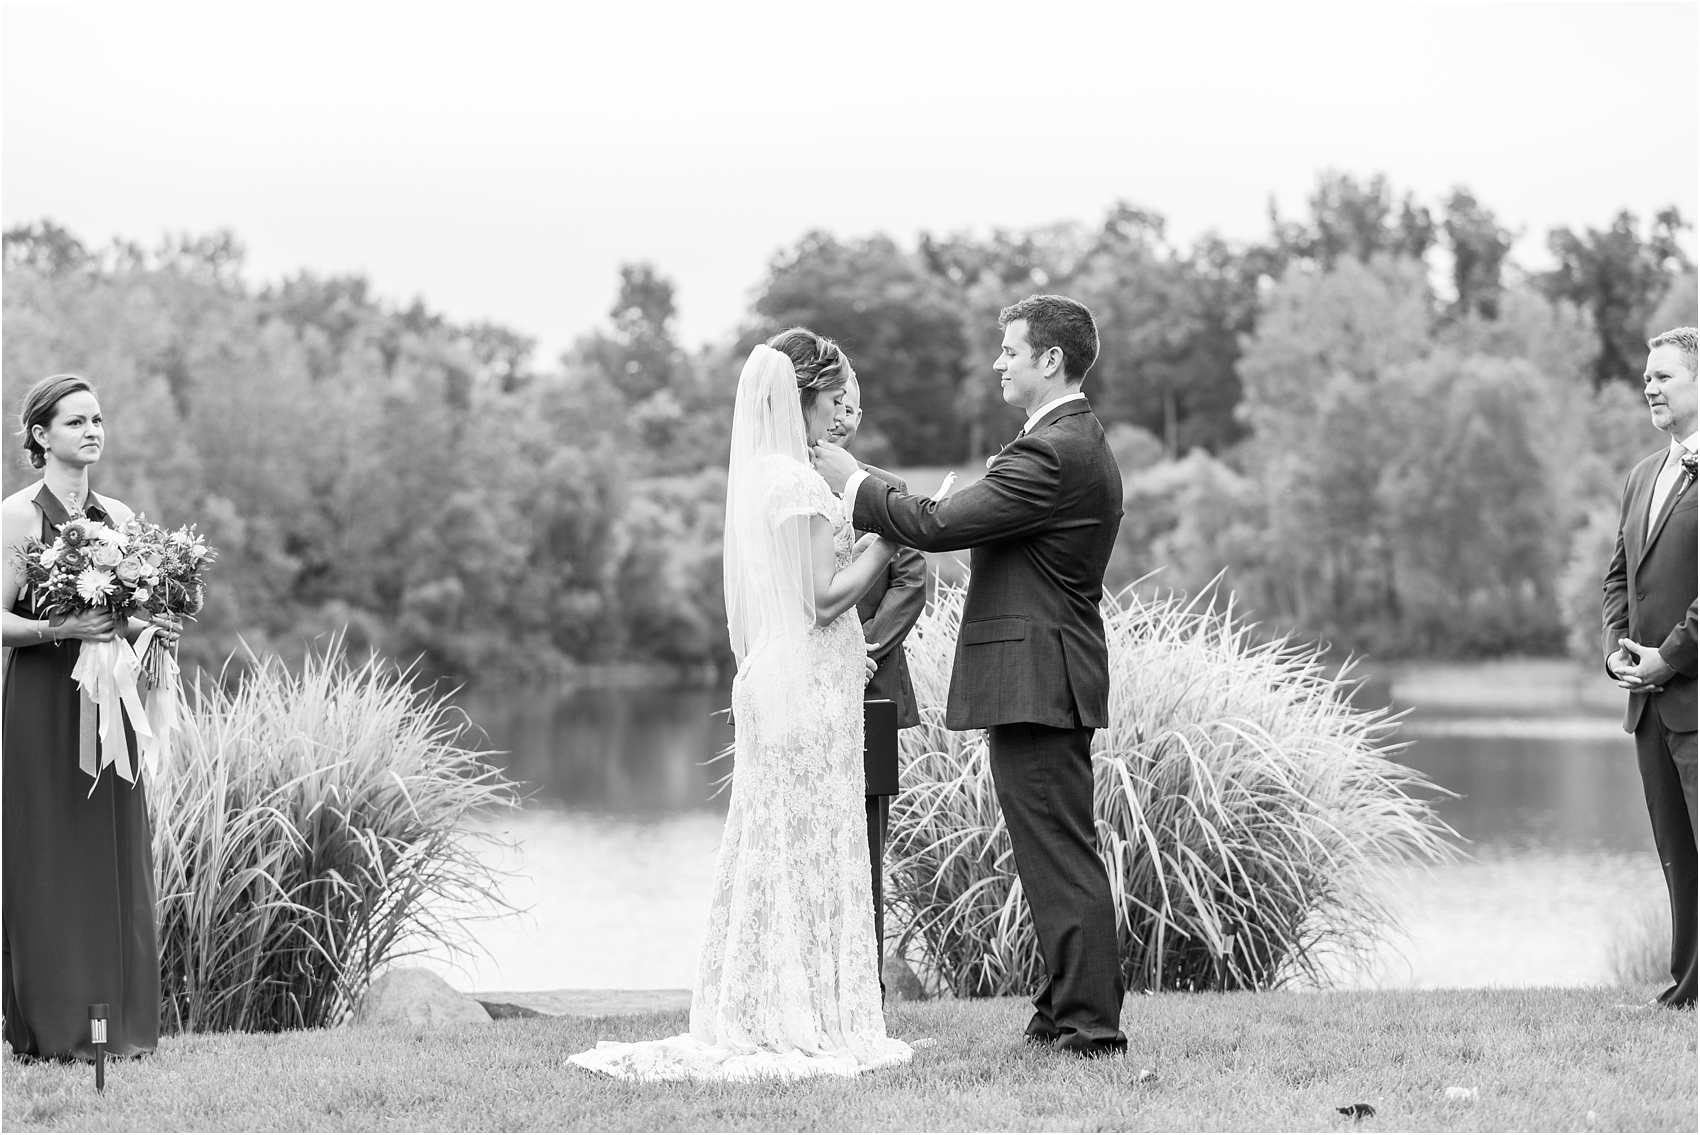 romantic-intimate-backyard-wedding-photos-at-private-estate-in-ann-arbor-mi-by-courtney-carolyn-photography_0101.jpg